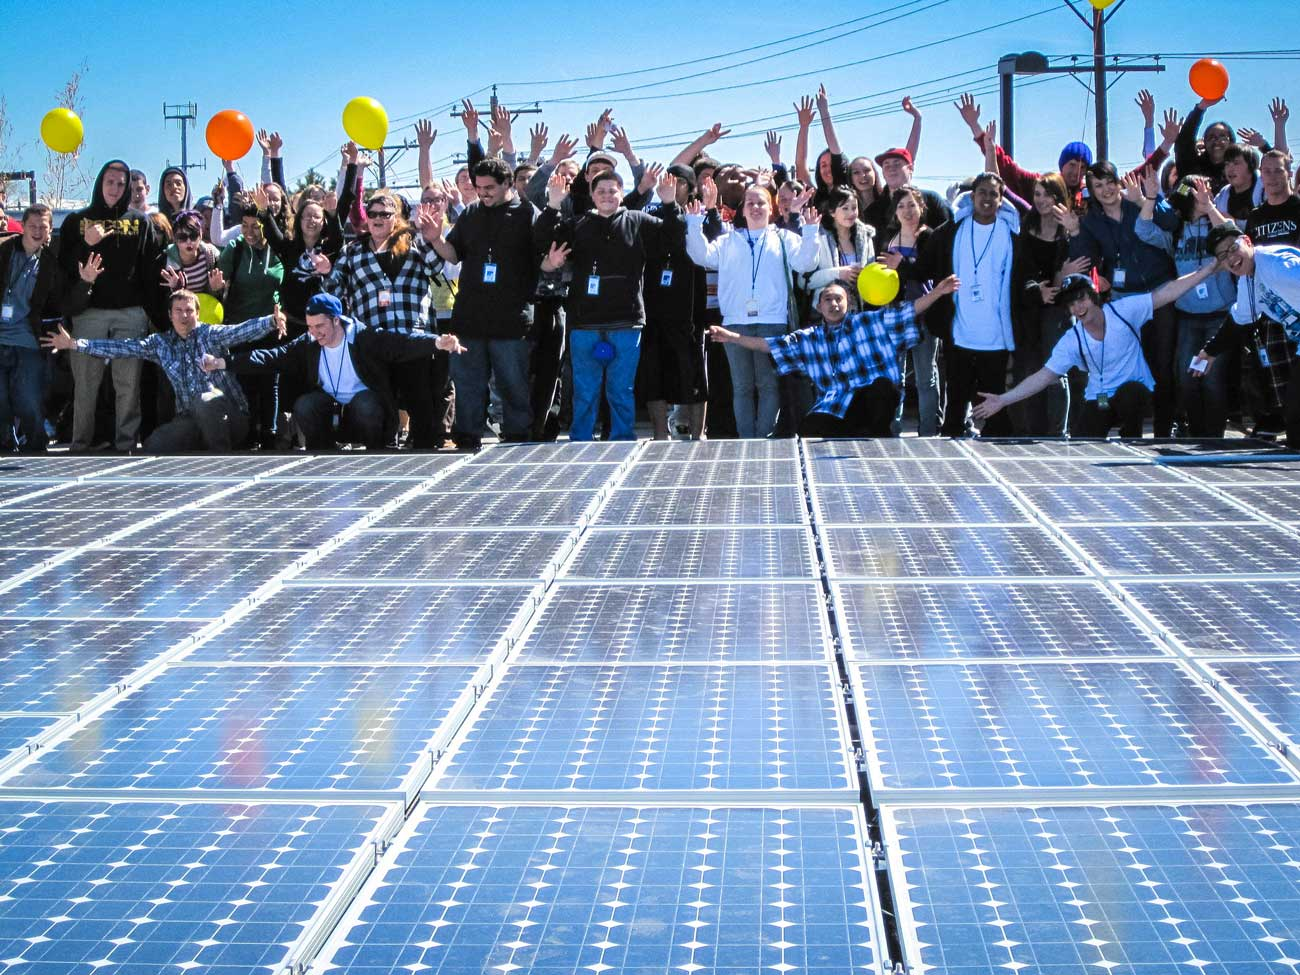 Black Rock Solar, a nonprofit entity, installed a 31 kilowatt photovoltaic array at Rainshadow Community Charter High School in Reno, Nevada.